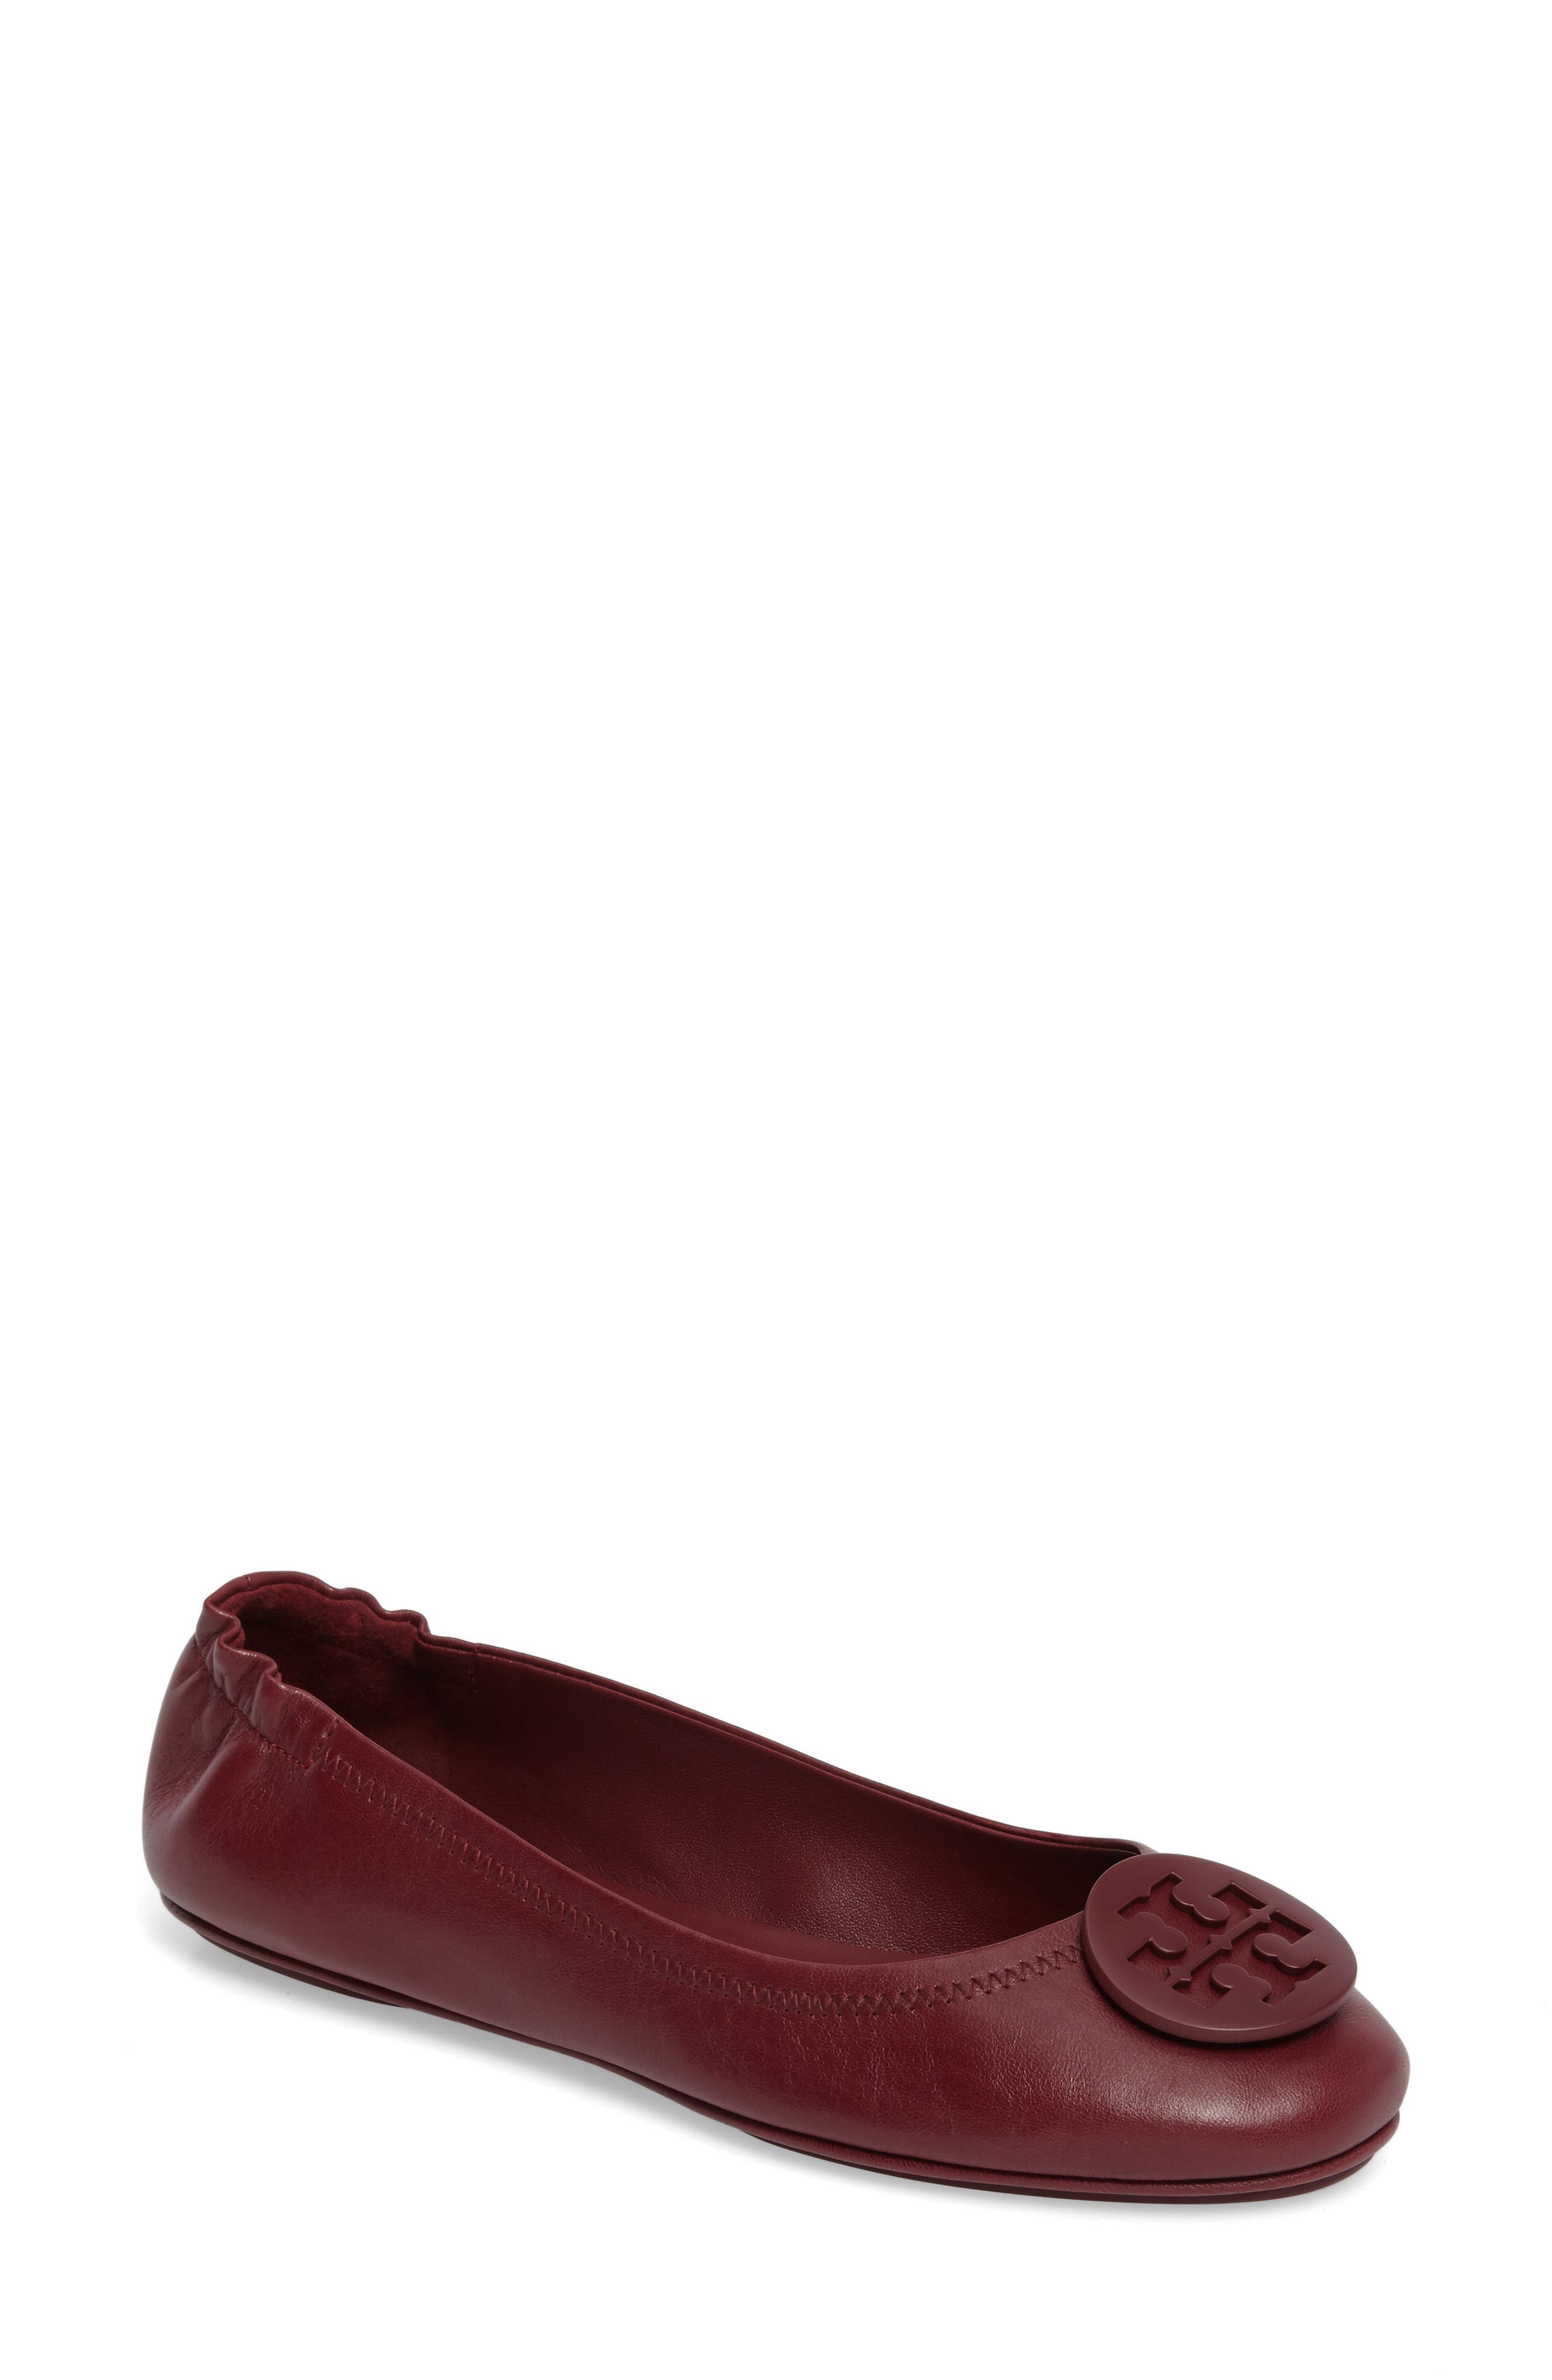 Main Image - Tory Burch 'Minnie' Travel Ballet Flat (Women)